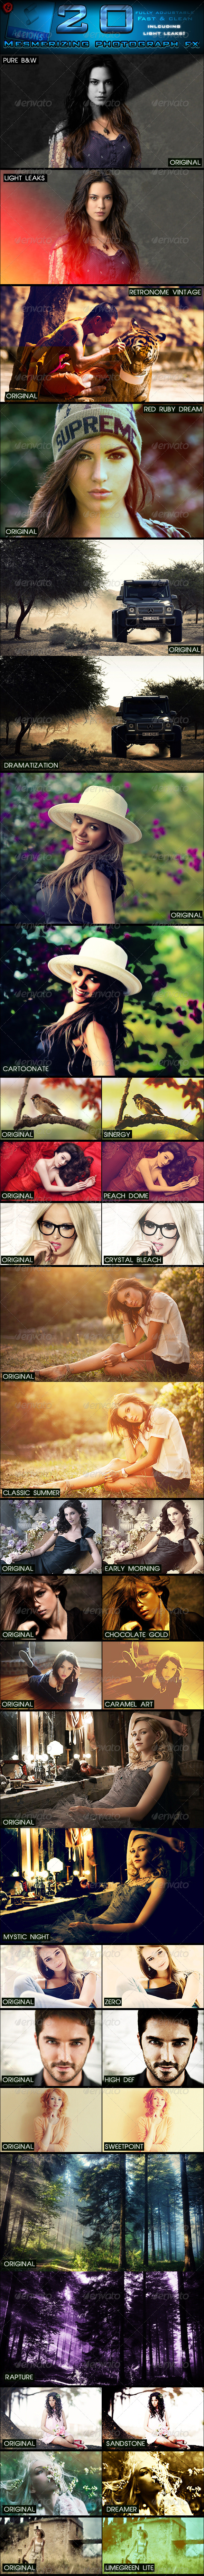 20 Photograph FX - Photo Effects Actions